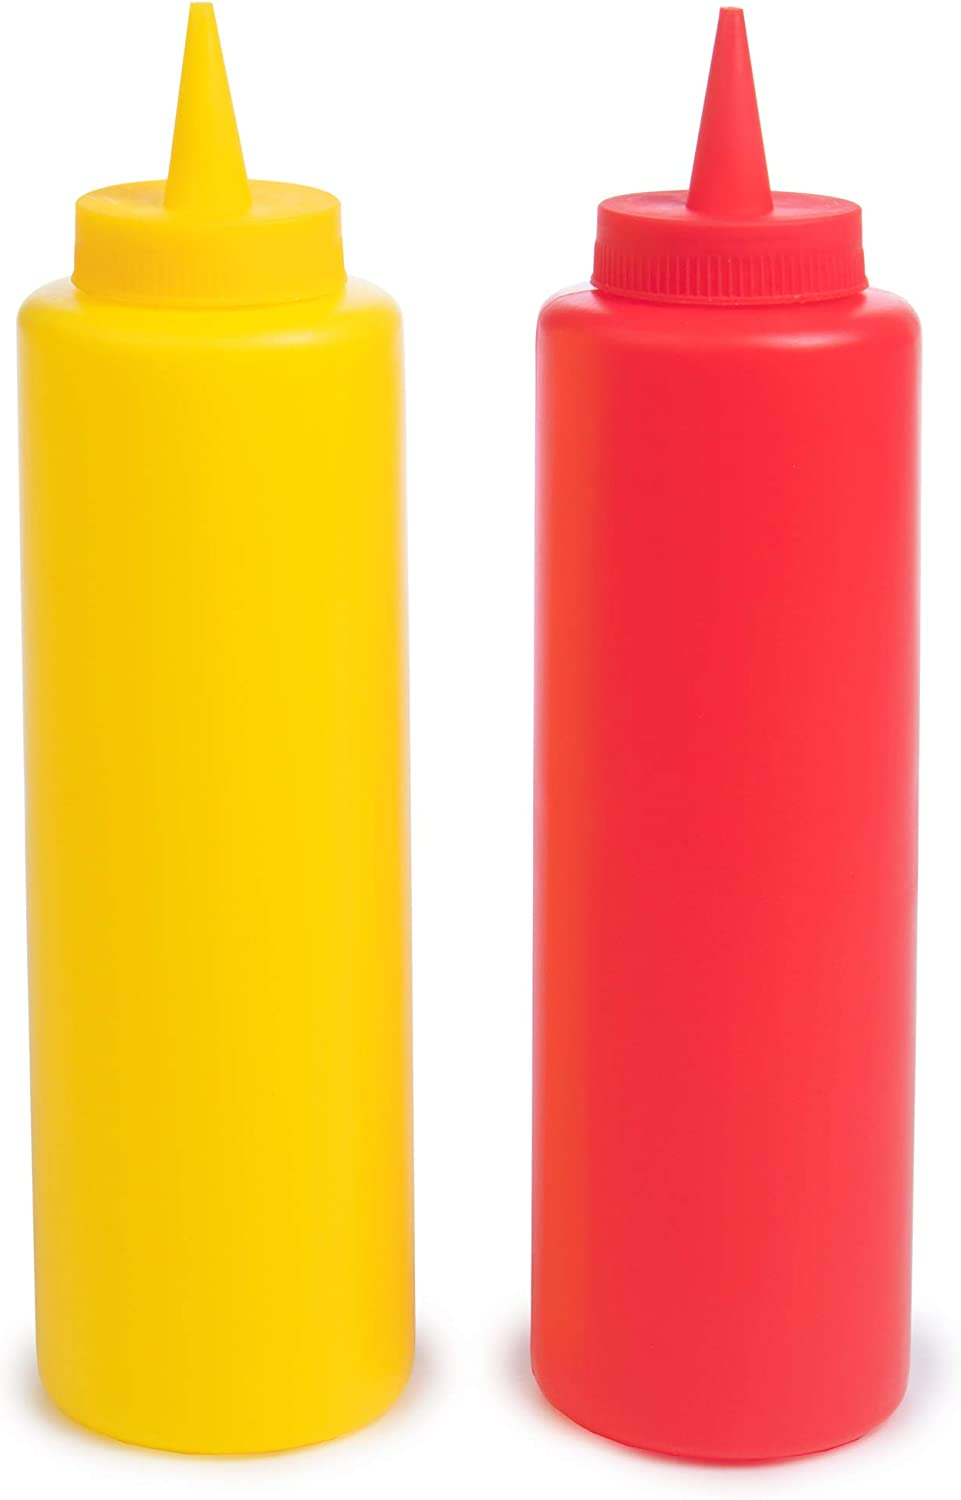 Ketchup and Mustard Squeeze Bottle Combo Pack | 2-pack 16-oz Red & Yellow Plastic Kitchen Table Condiment Squirt Dispensers | Restaurant Supplies for Food Truck, Grilling, Dressing, BBQ Sauce, Crafts